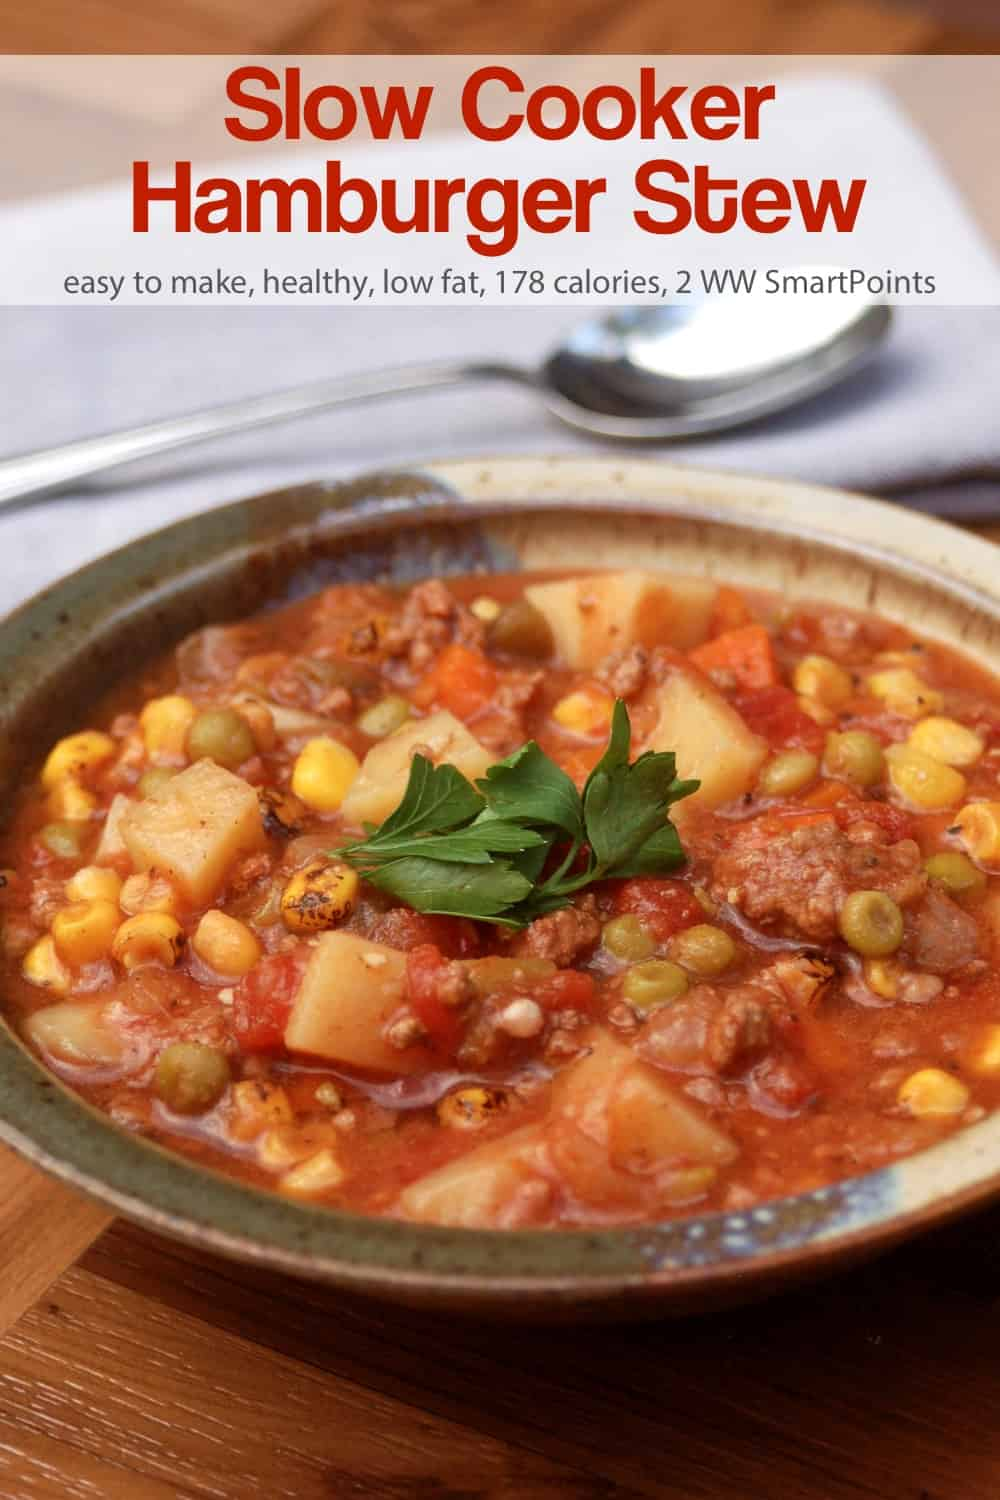 This healthy, home cooked slow cooker hamburger stew is a hodgepodge of vegetables and ground beef that simmers for hours in the crock pot - the perfect antidote to weeks of overindulging! #slowcookerhamburgerstew #stew #slowcooker